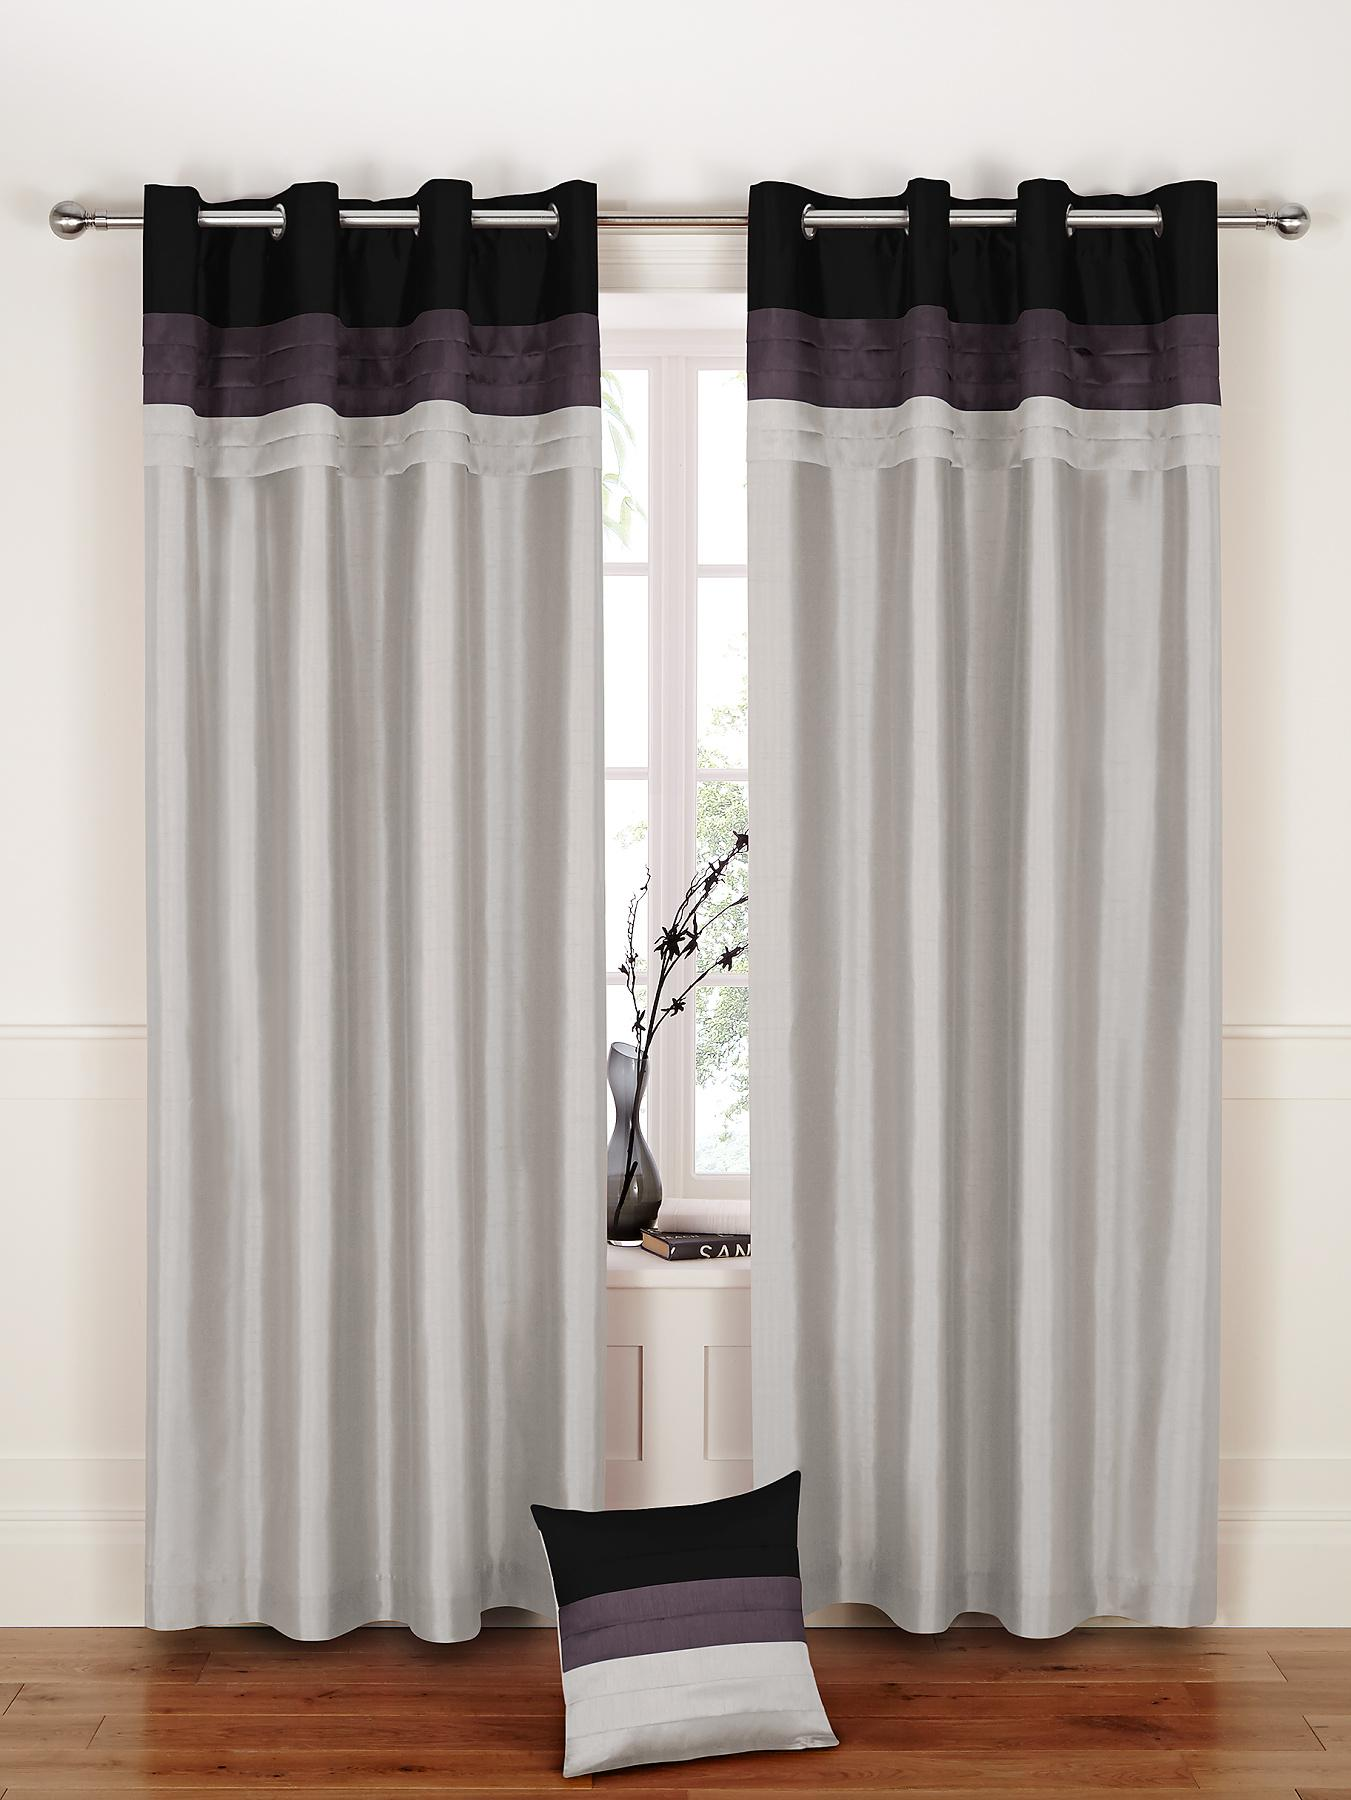 Seattle Eyelet Curtains - Black, Black,Red,Teal